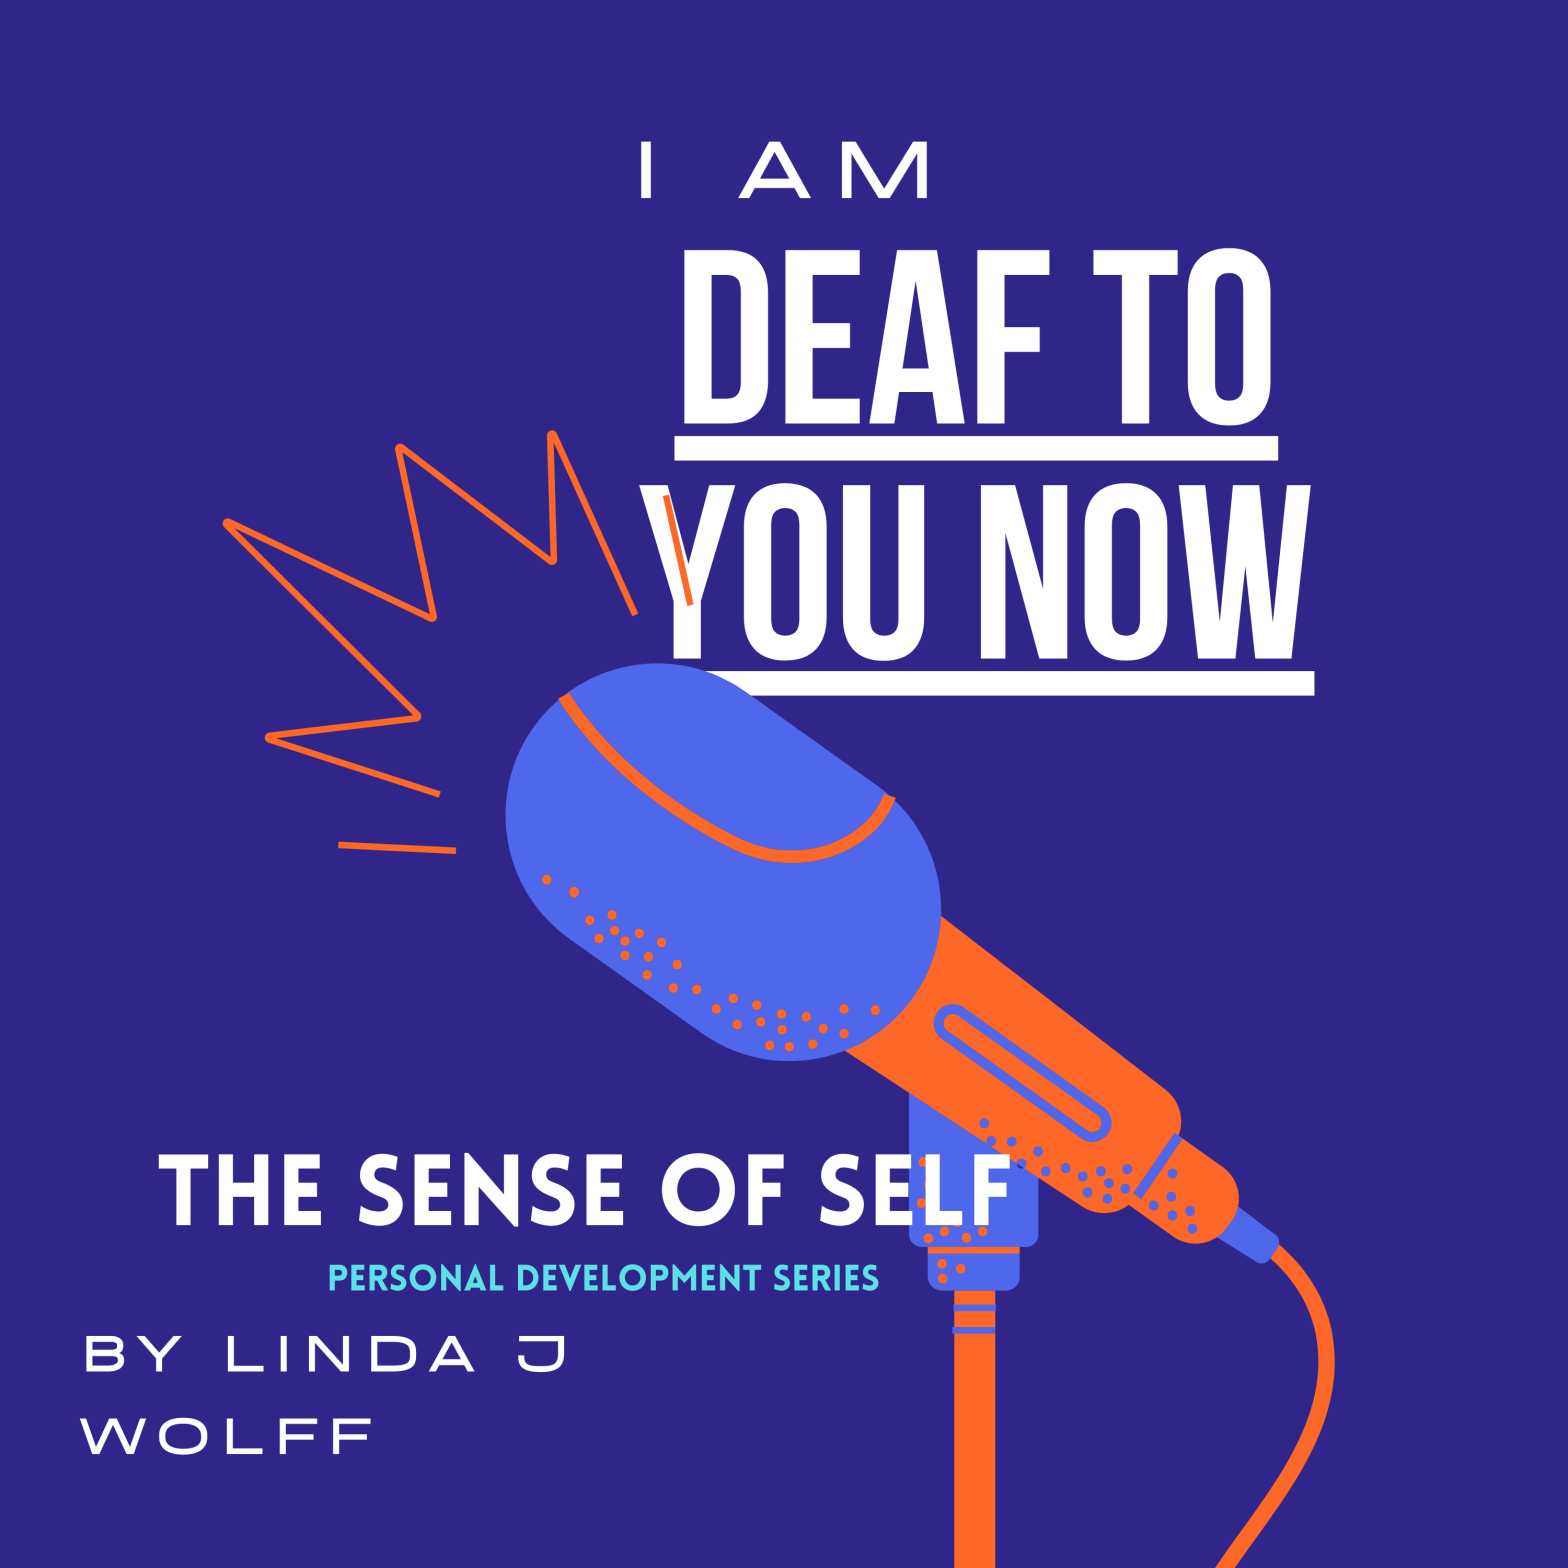 Personal Development Series - I am Deaf to You Now blog post image